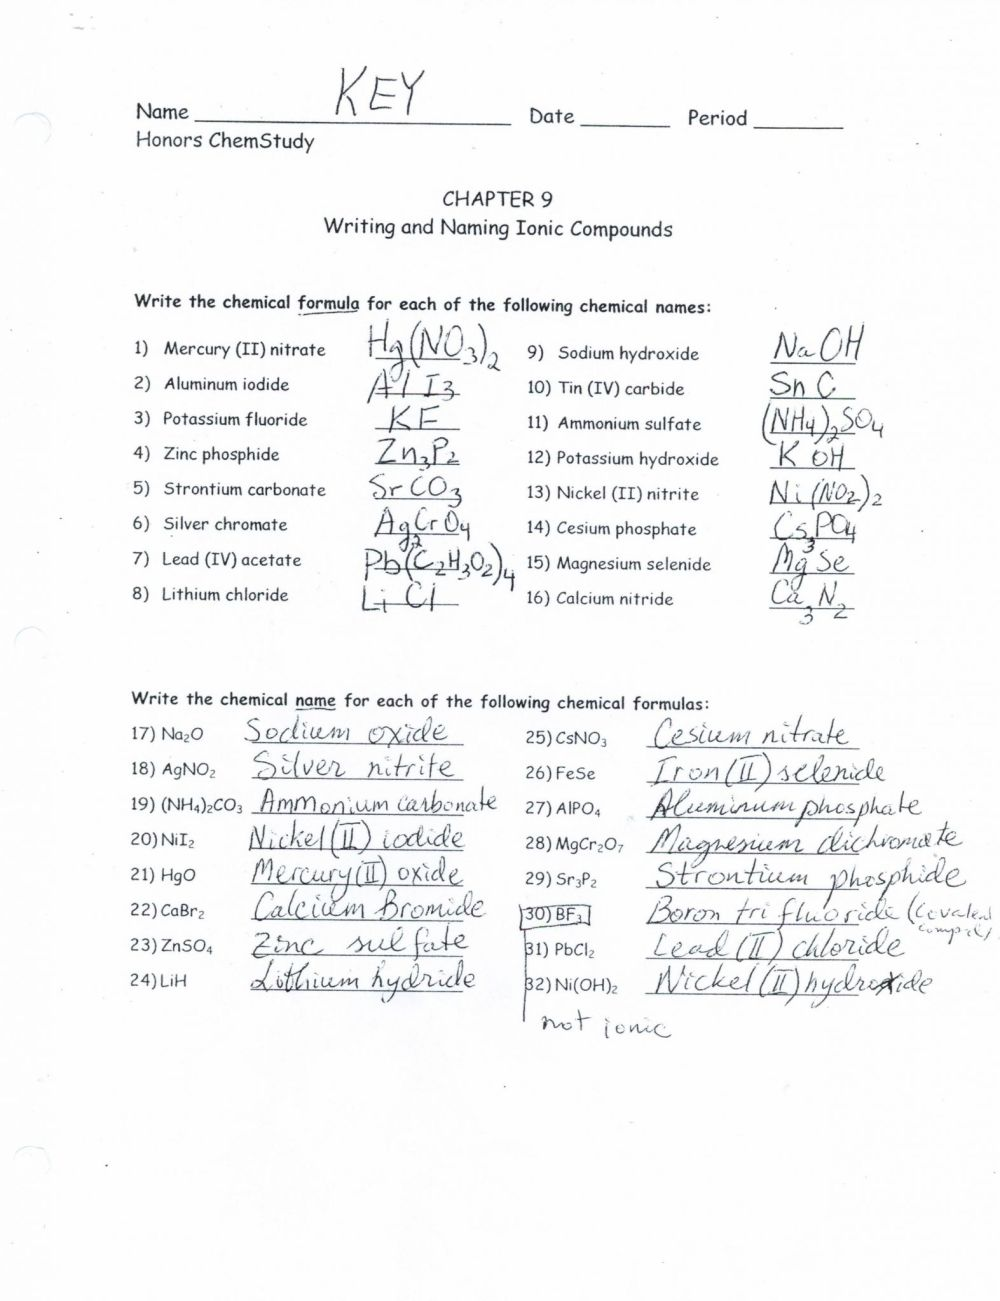 medium resolution of 30 Formulas For Ionic Compounds Worksheet Answers - Worksheet Project List